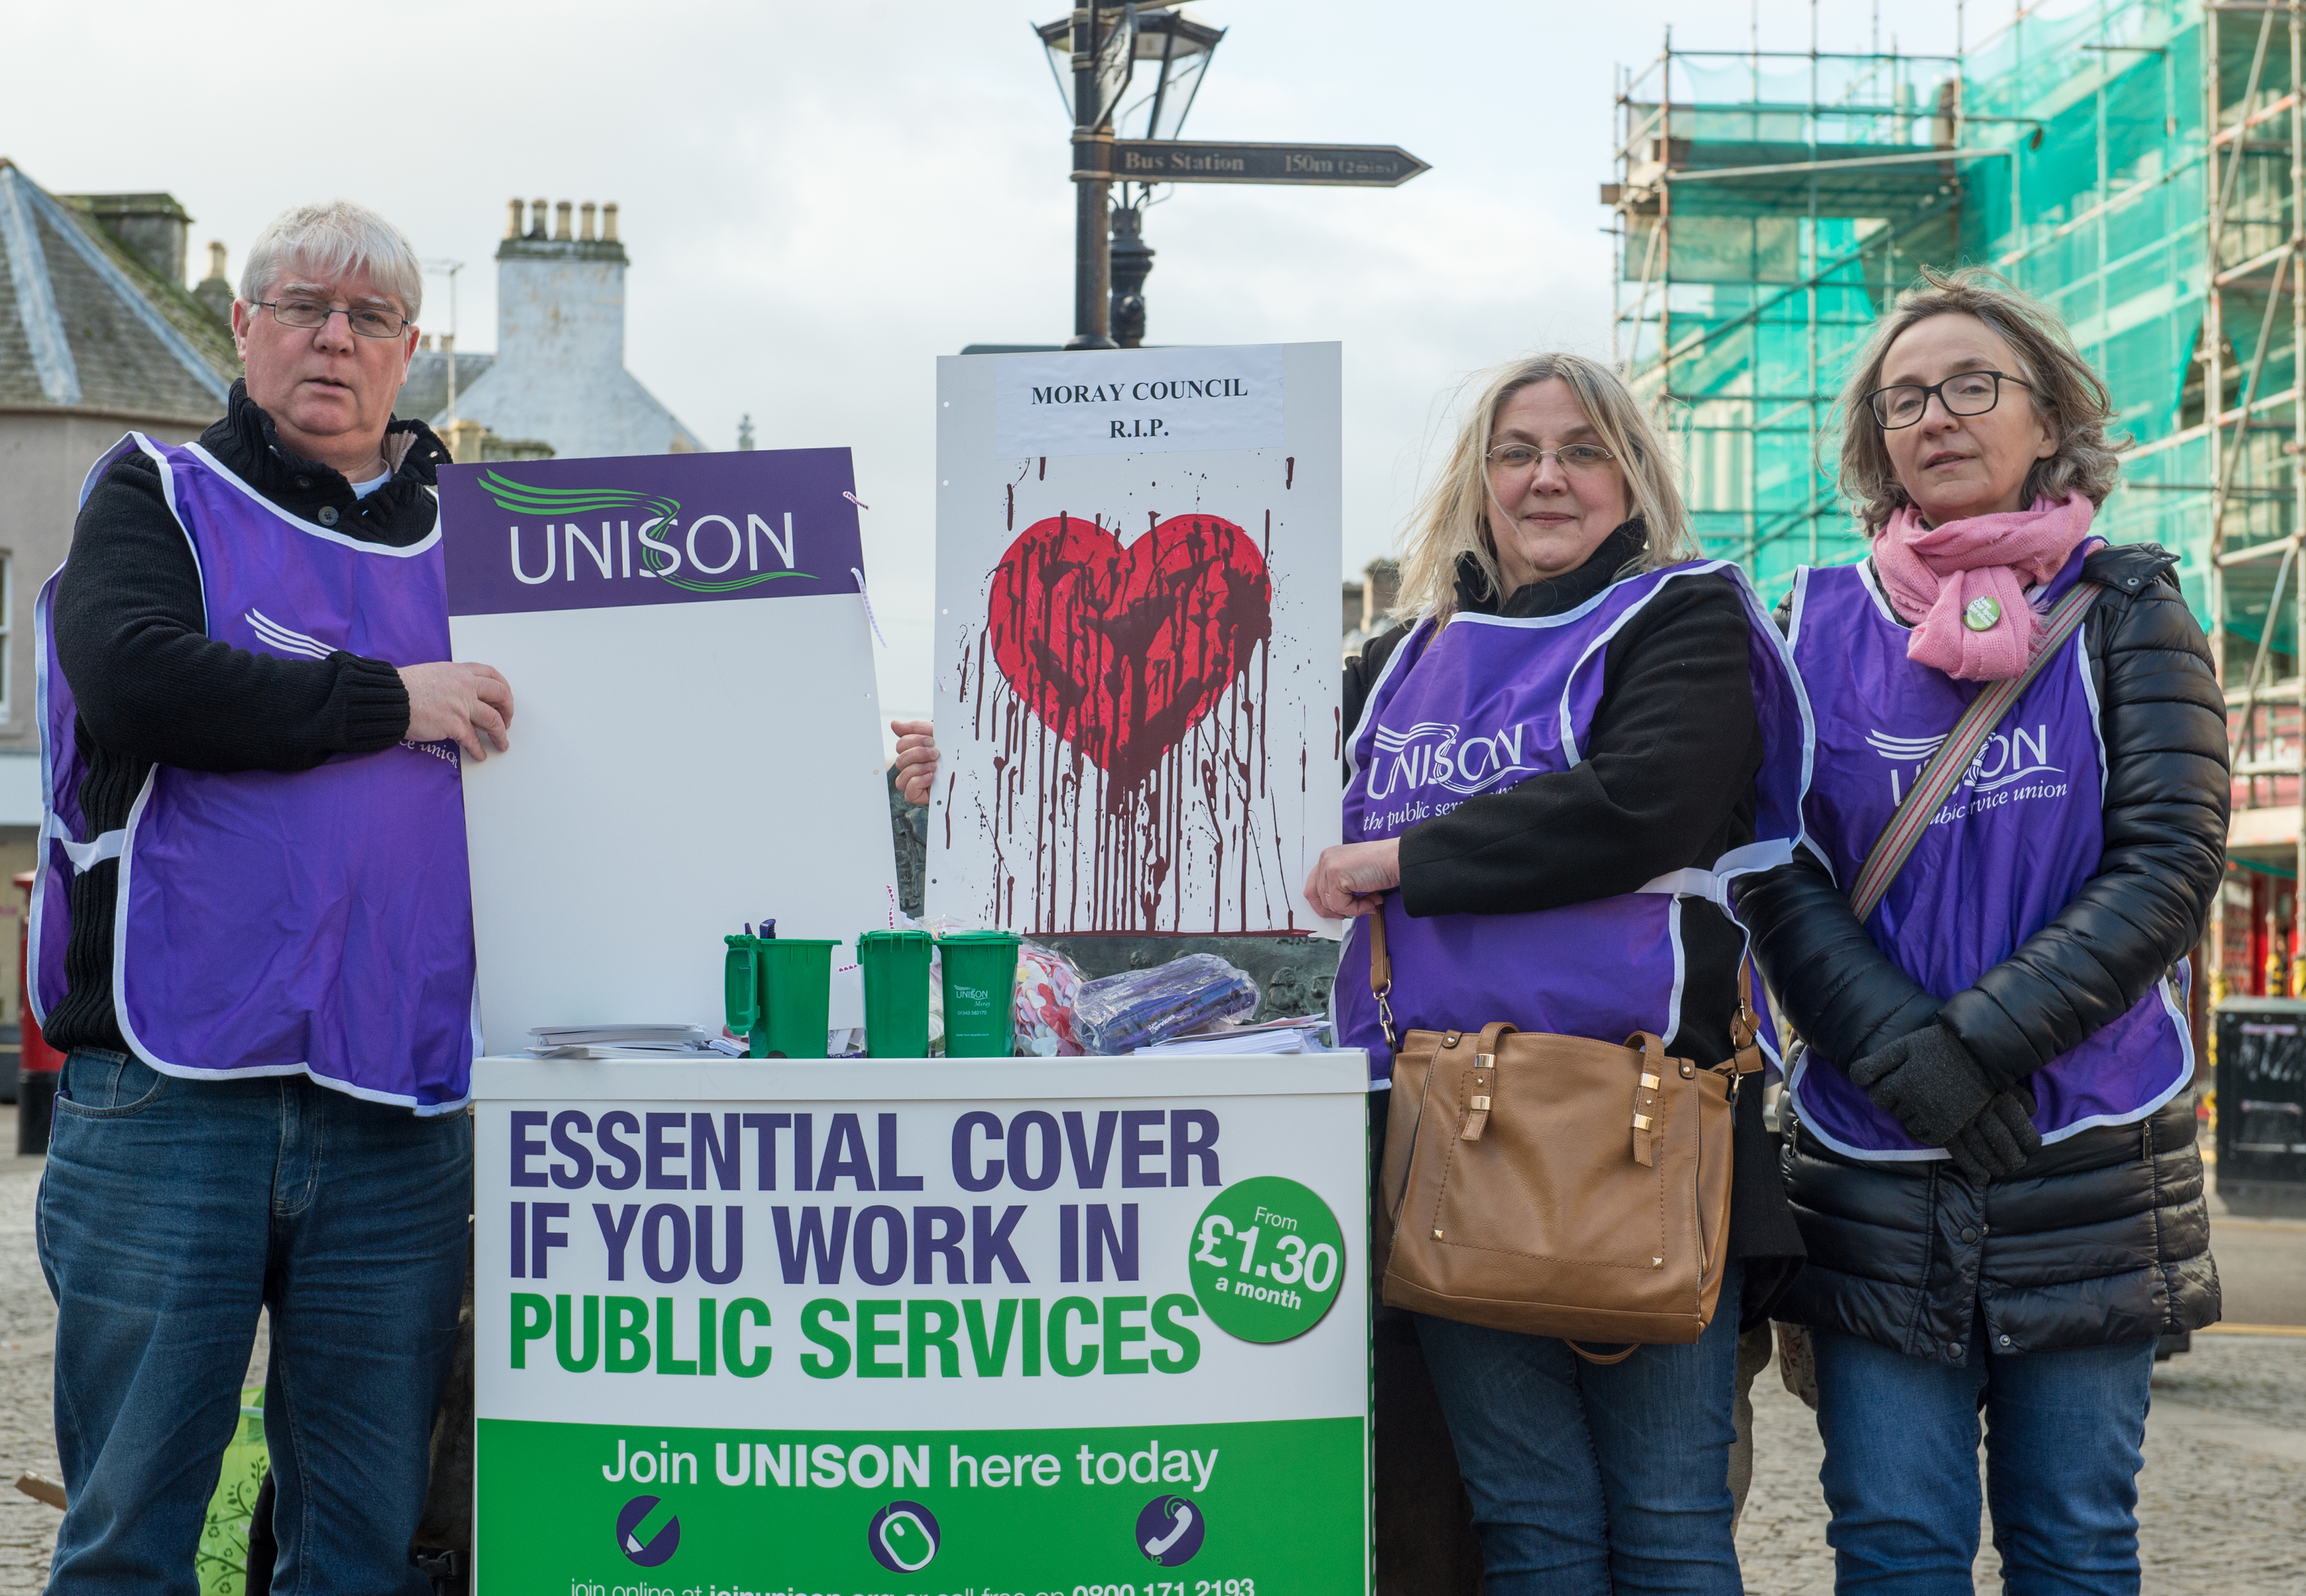 Moray Unison opposed cuts agreed at this year's budget. Pictured: member Tony Donaghey, branch secretary Suzanne Wright and member Eilidh Macleod.